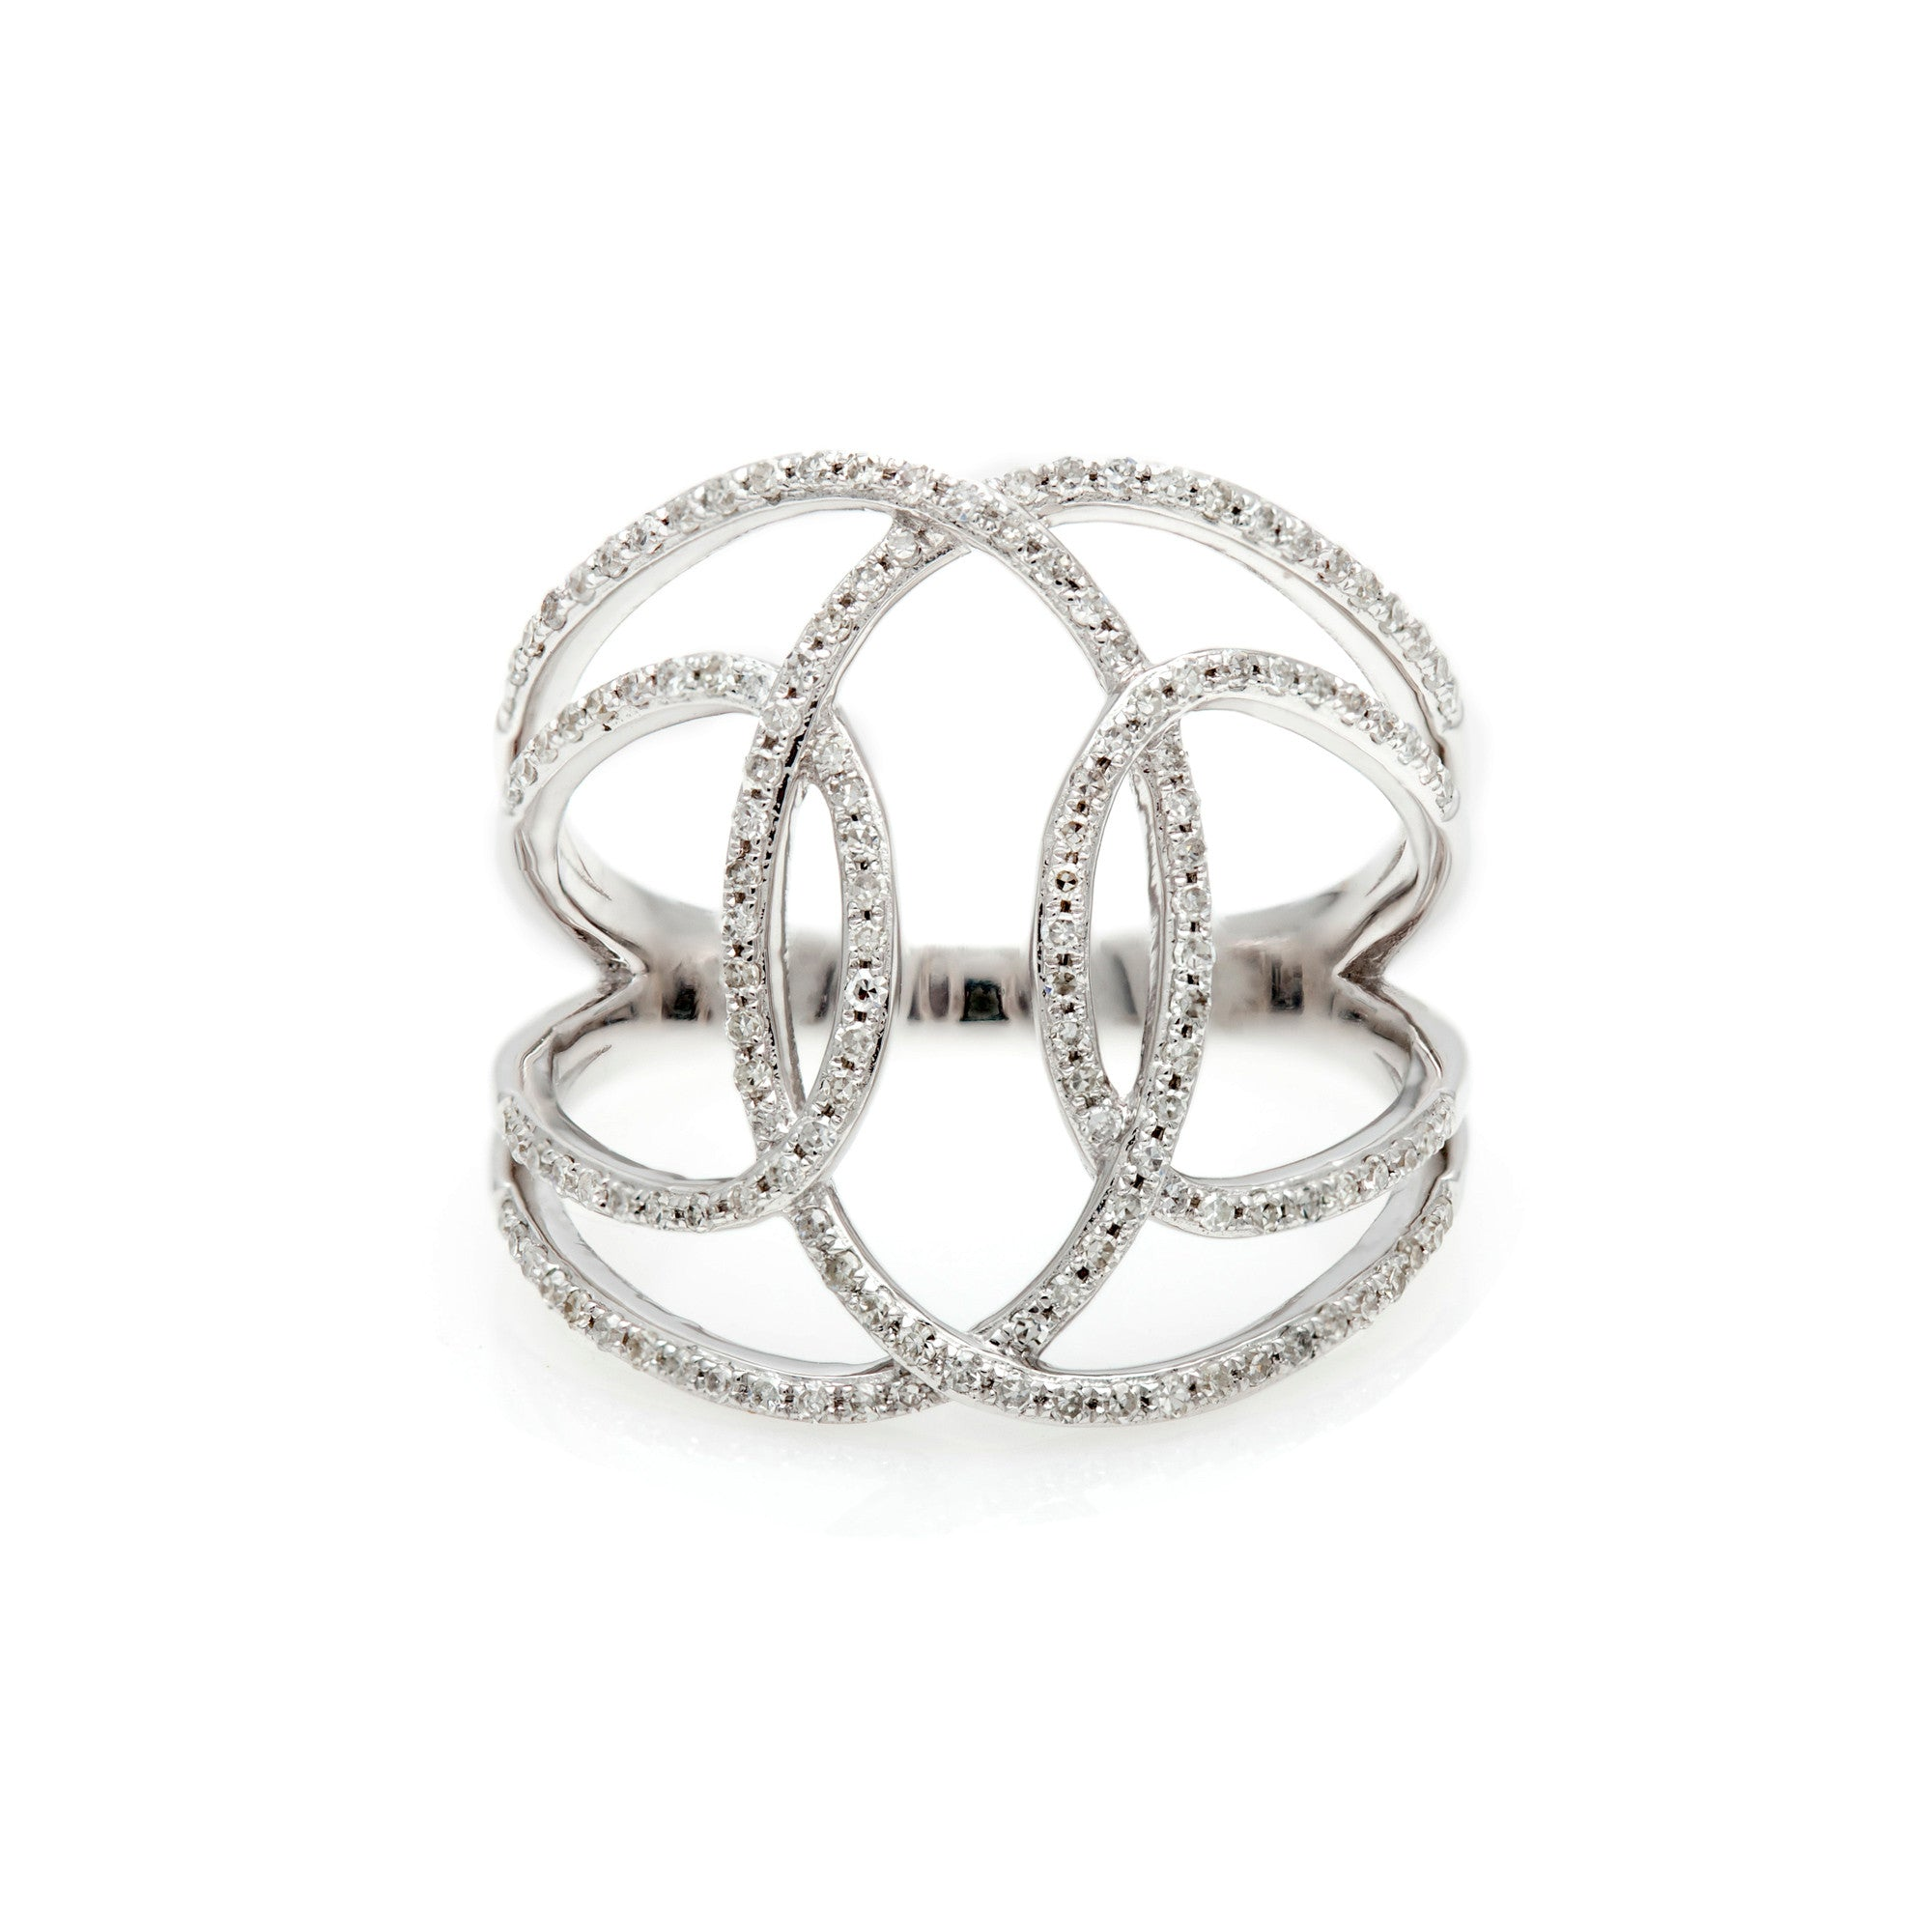 Swirls of Diamond Ring-30% OFF!